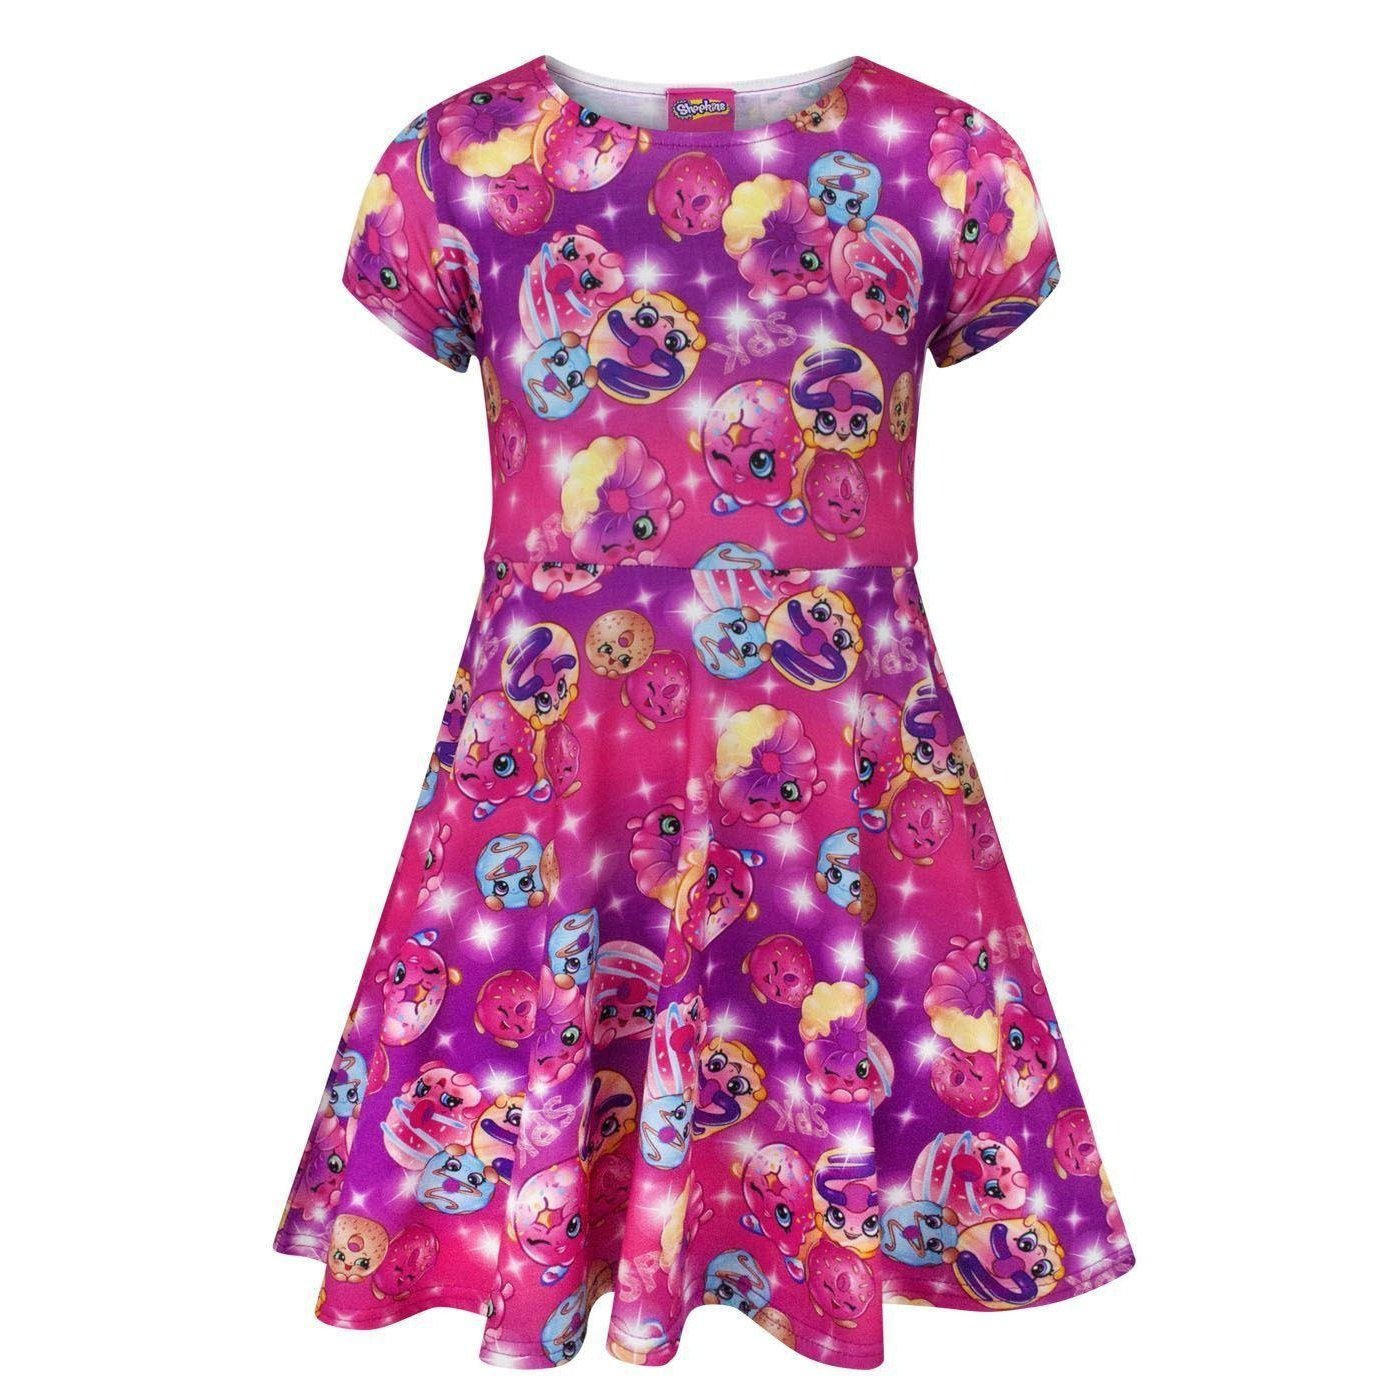 Shopkins Childrens Girls D'Lish Donut Short Sleeved Dress